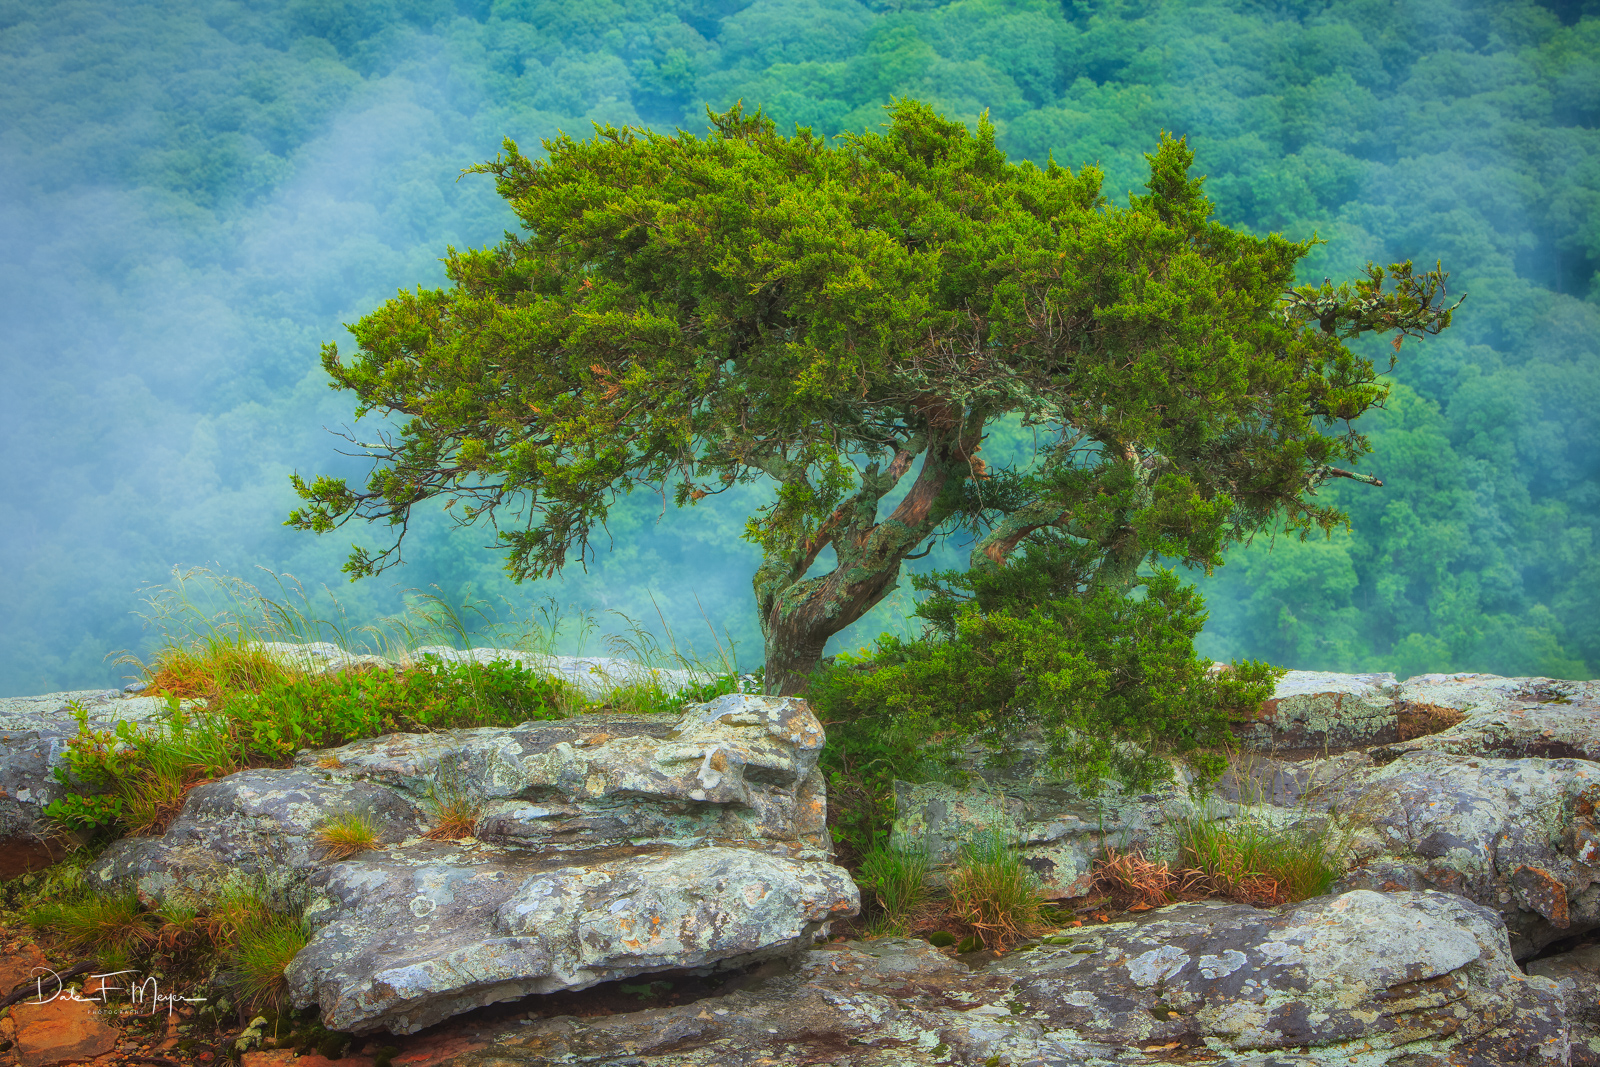 A Bonzied Cedar Tree growing in the crevis of this Rock Outcrop on a high overlook of Mount Magazine Arkansas. This tree has...